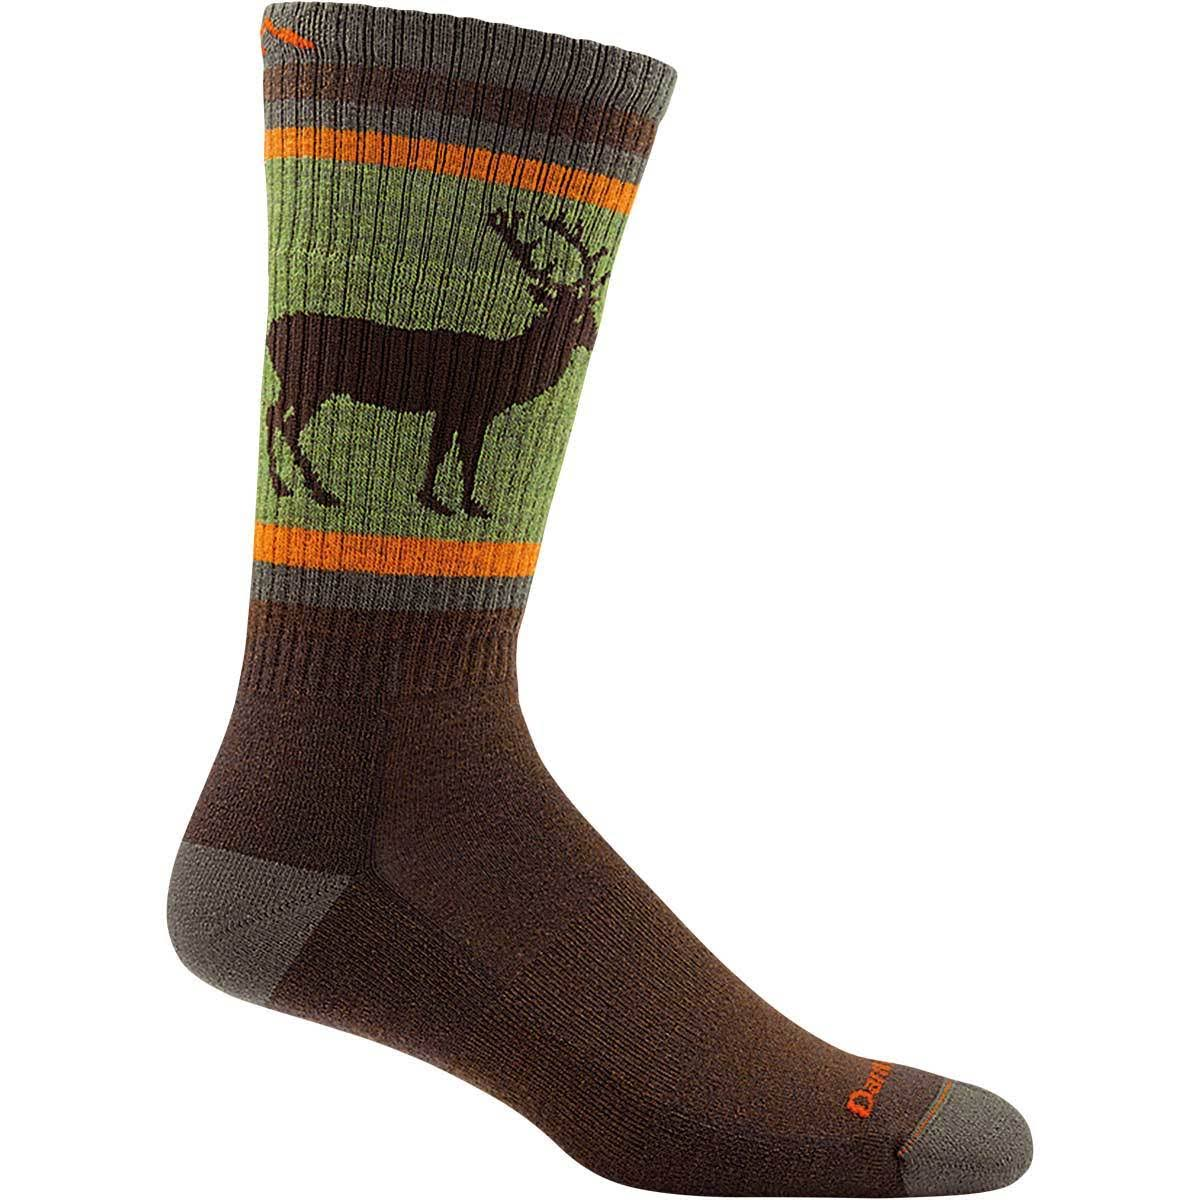 Darn Tough Men's Uncle Buck Boot Cushion Socks - Brown, X-Large